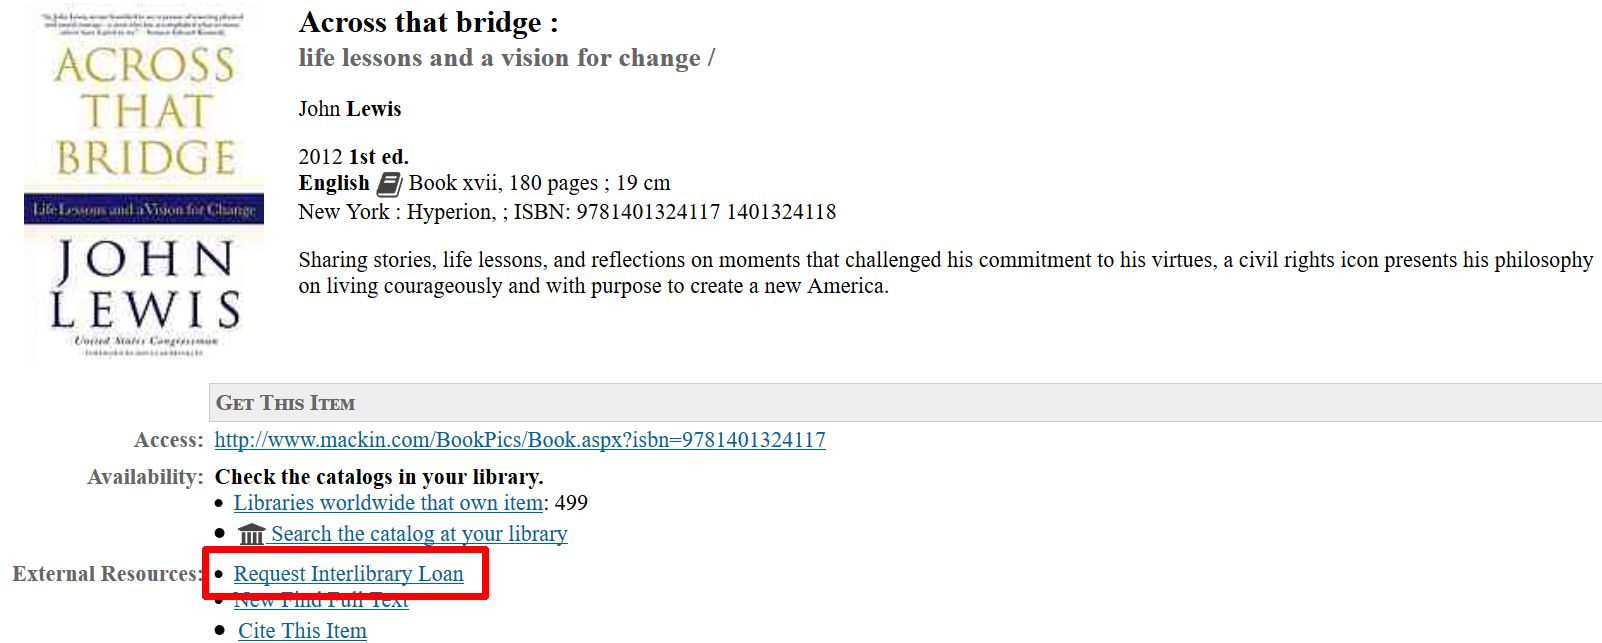 screenshot of link to request interlibrary loan from title record